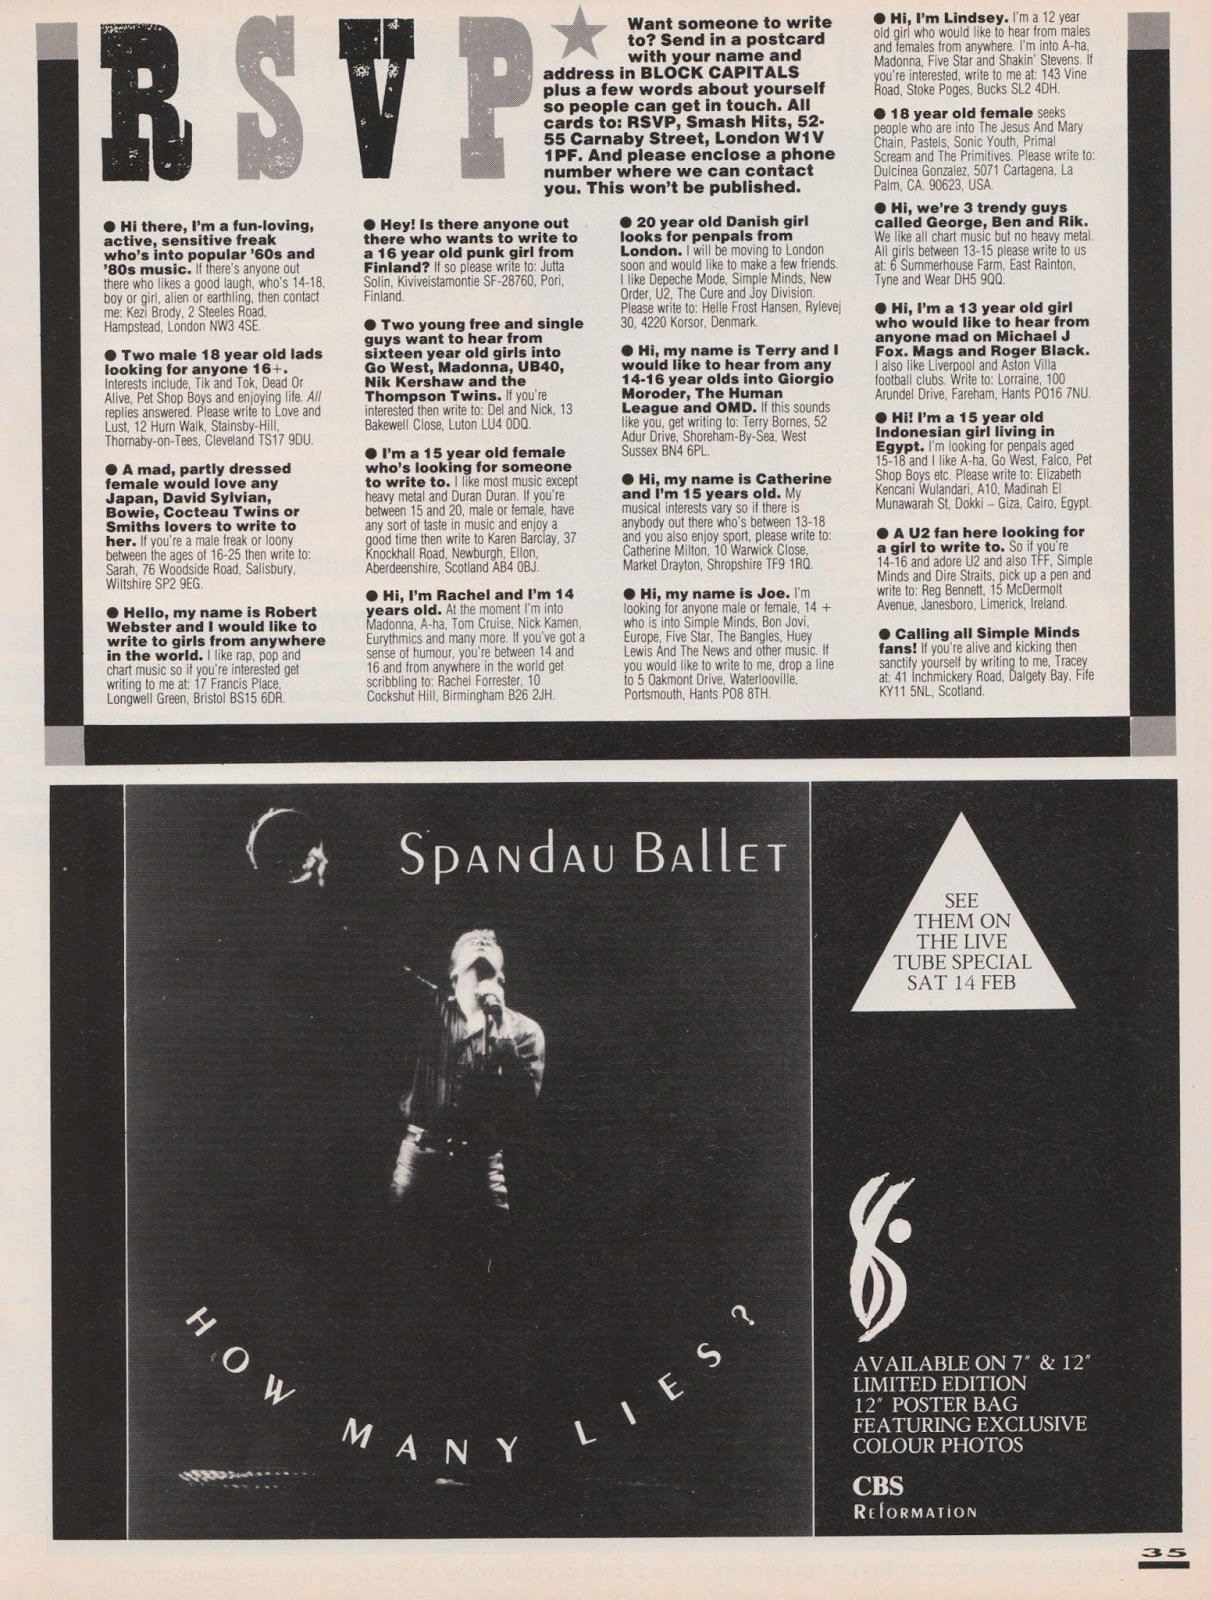 214 - 11th - 24th February 1987 - Smash Hits Remembered 43